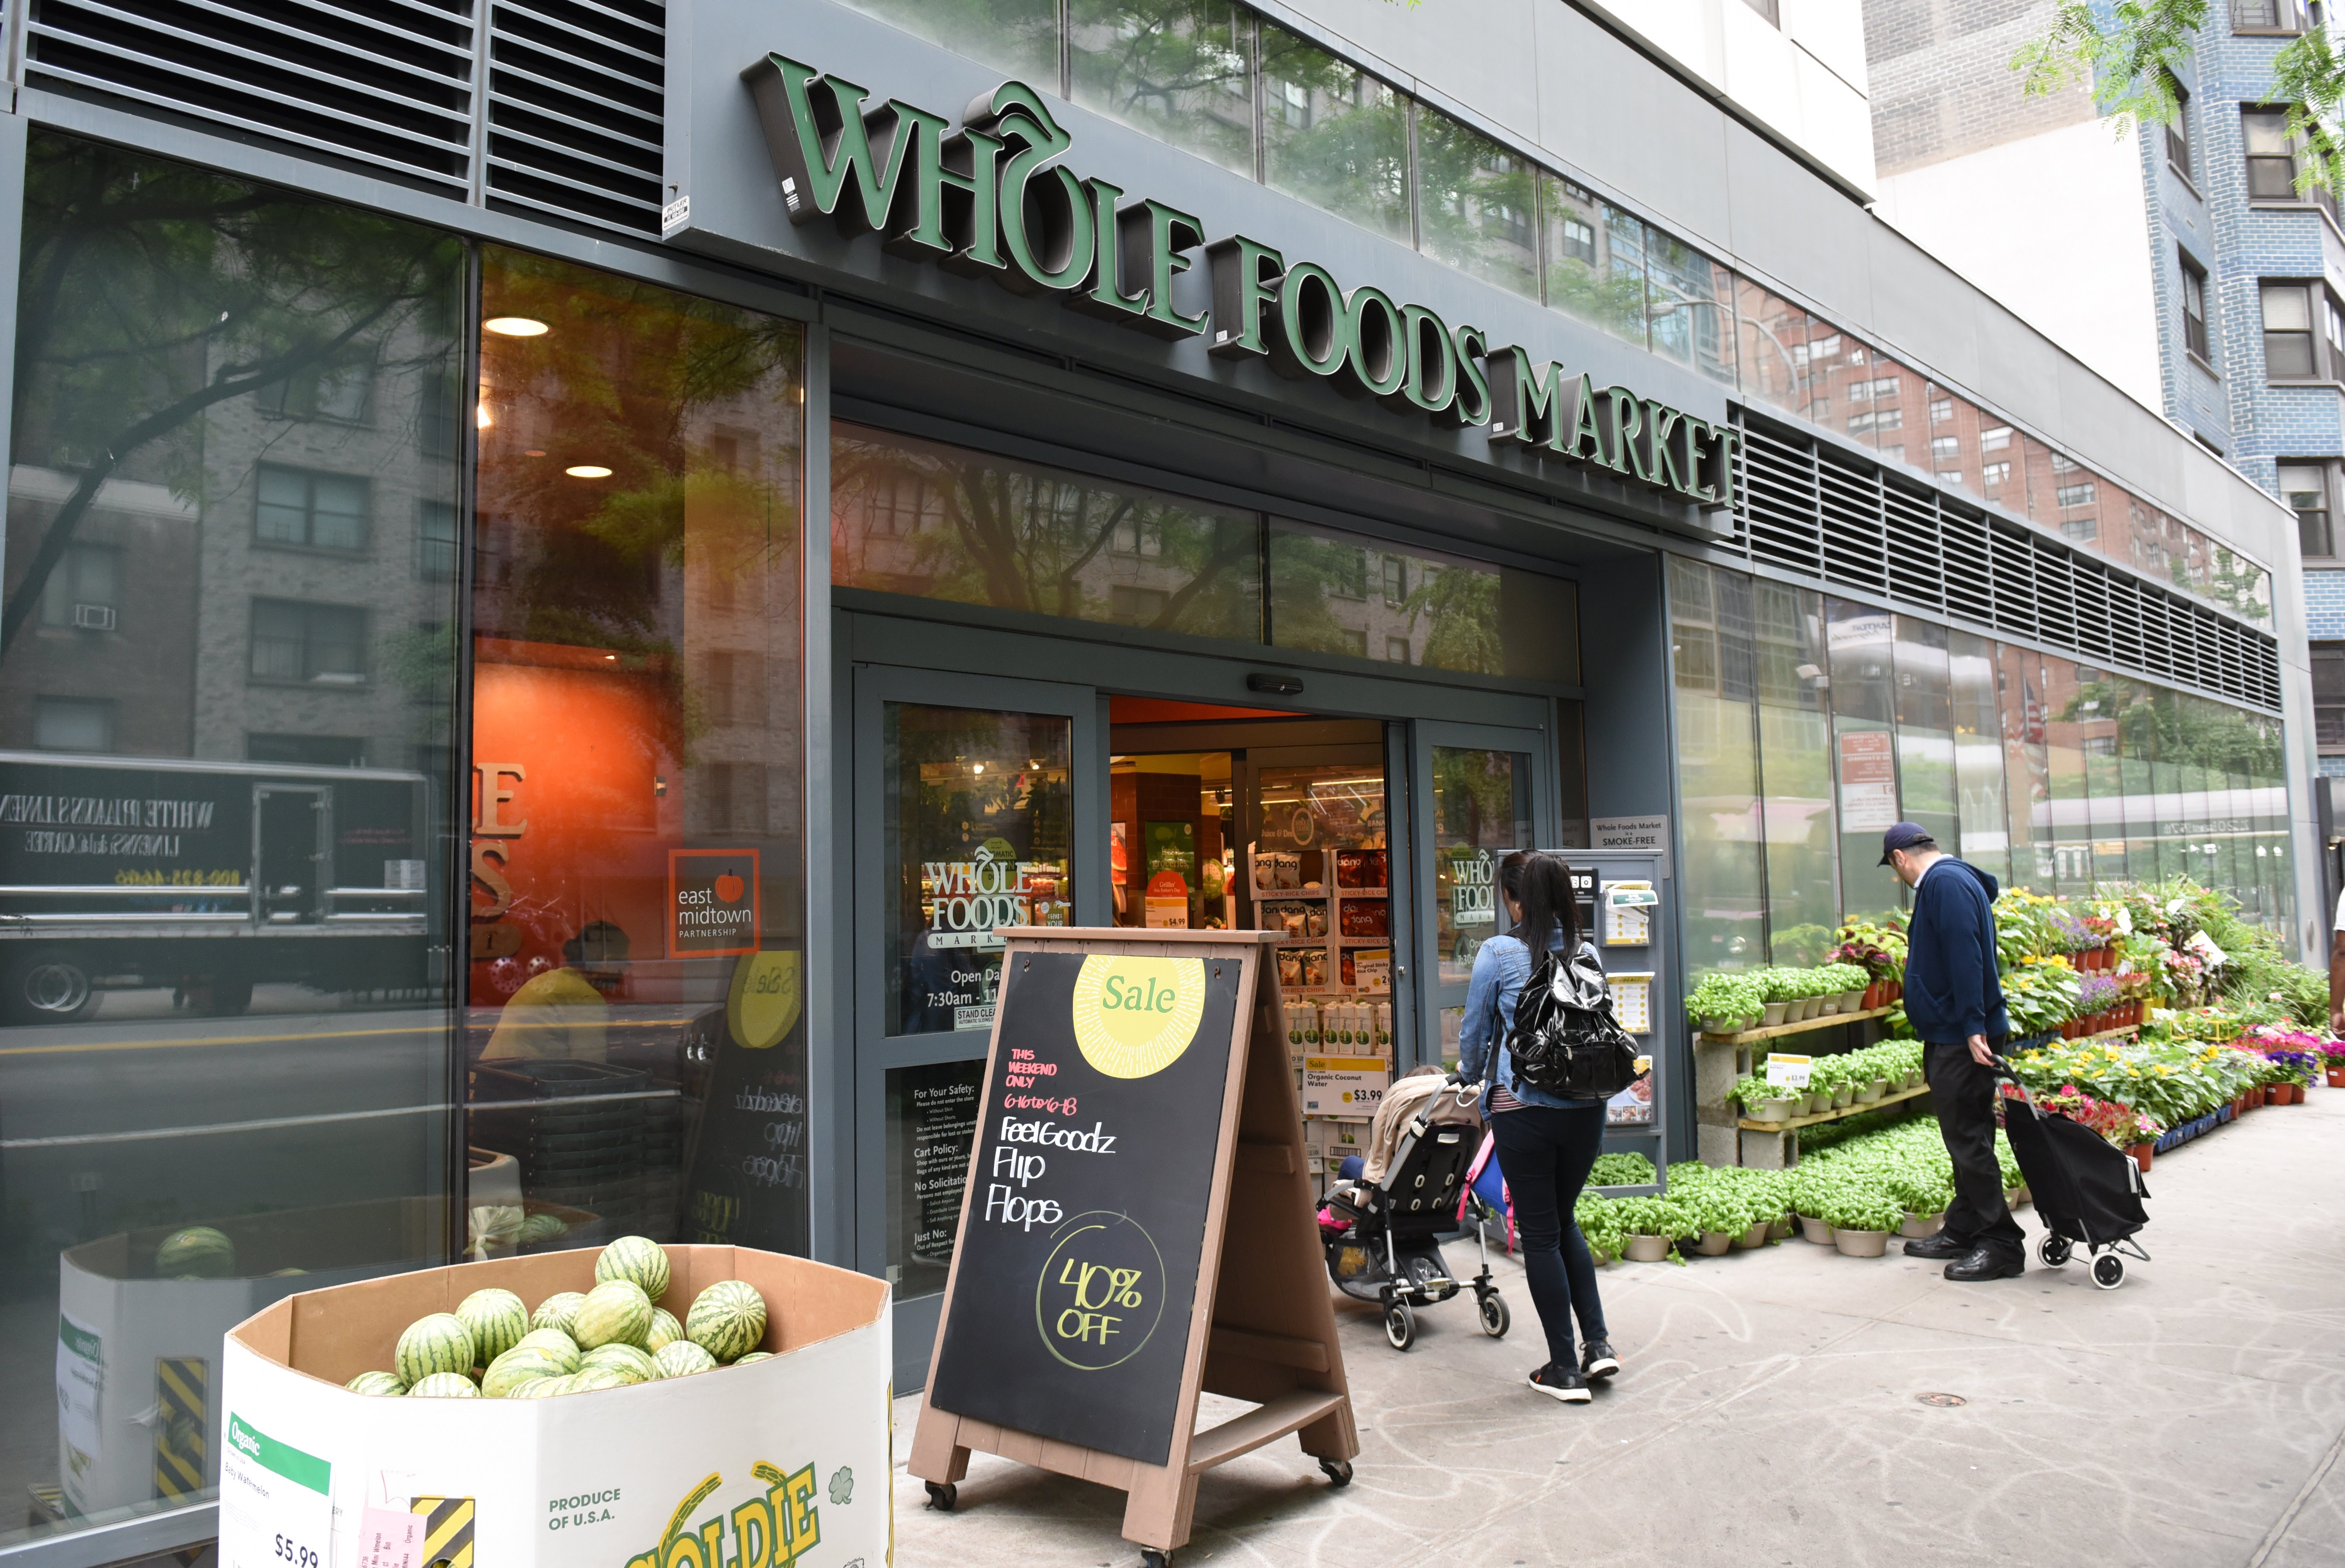 The Whole Foods Market in Midtown New York is seen on June 16, 2017. (TIMOTHY A. CLARY/AFP/Getty Images)